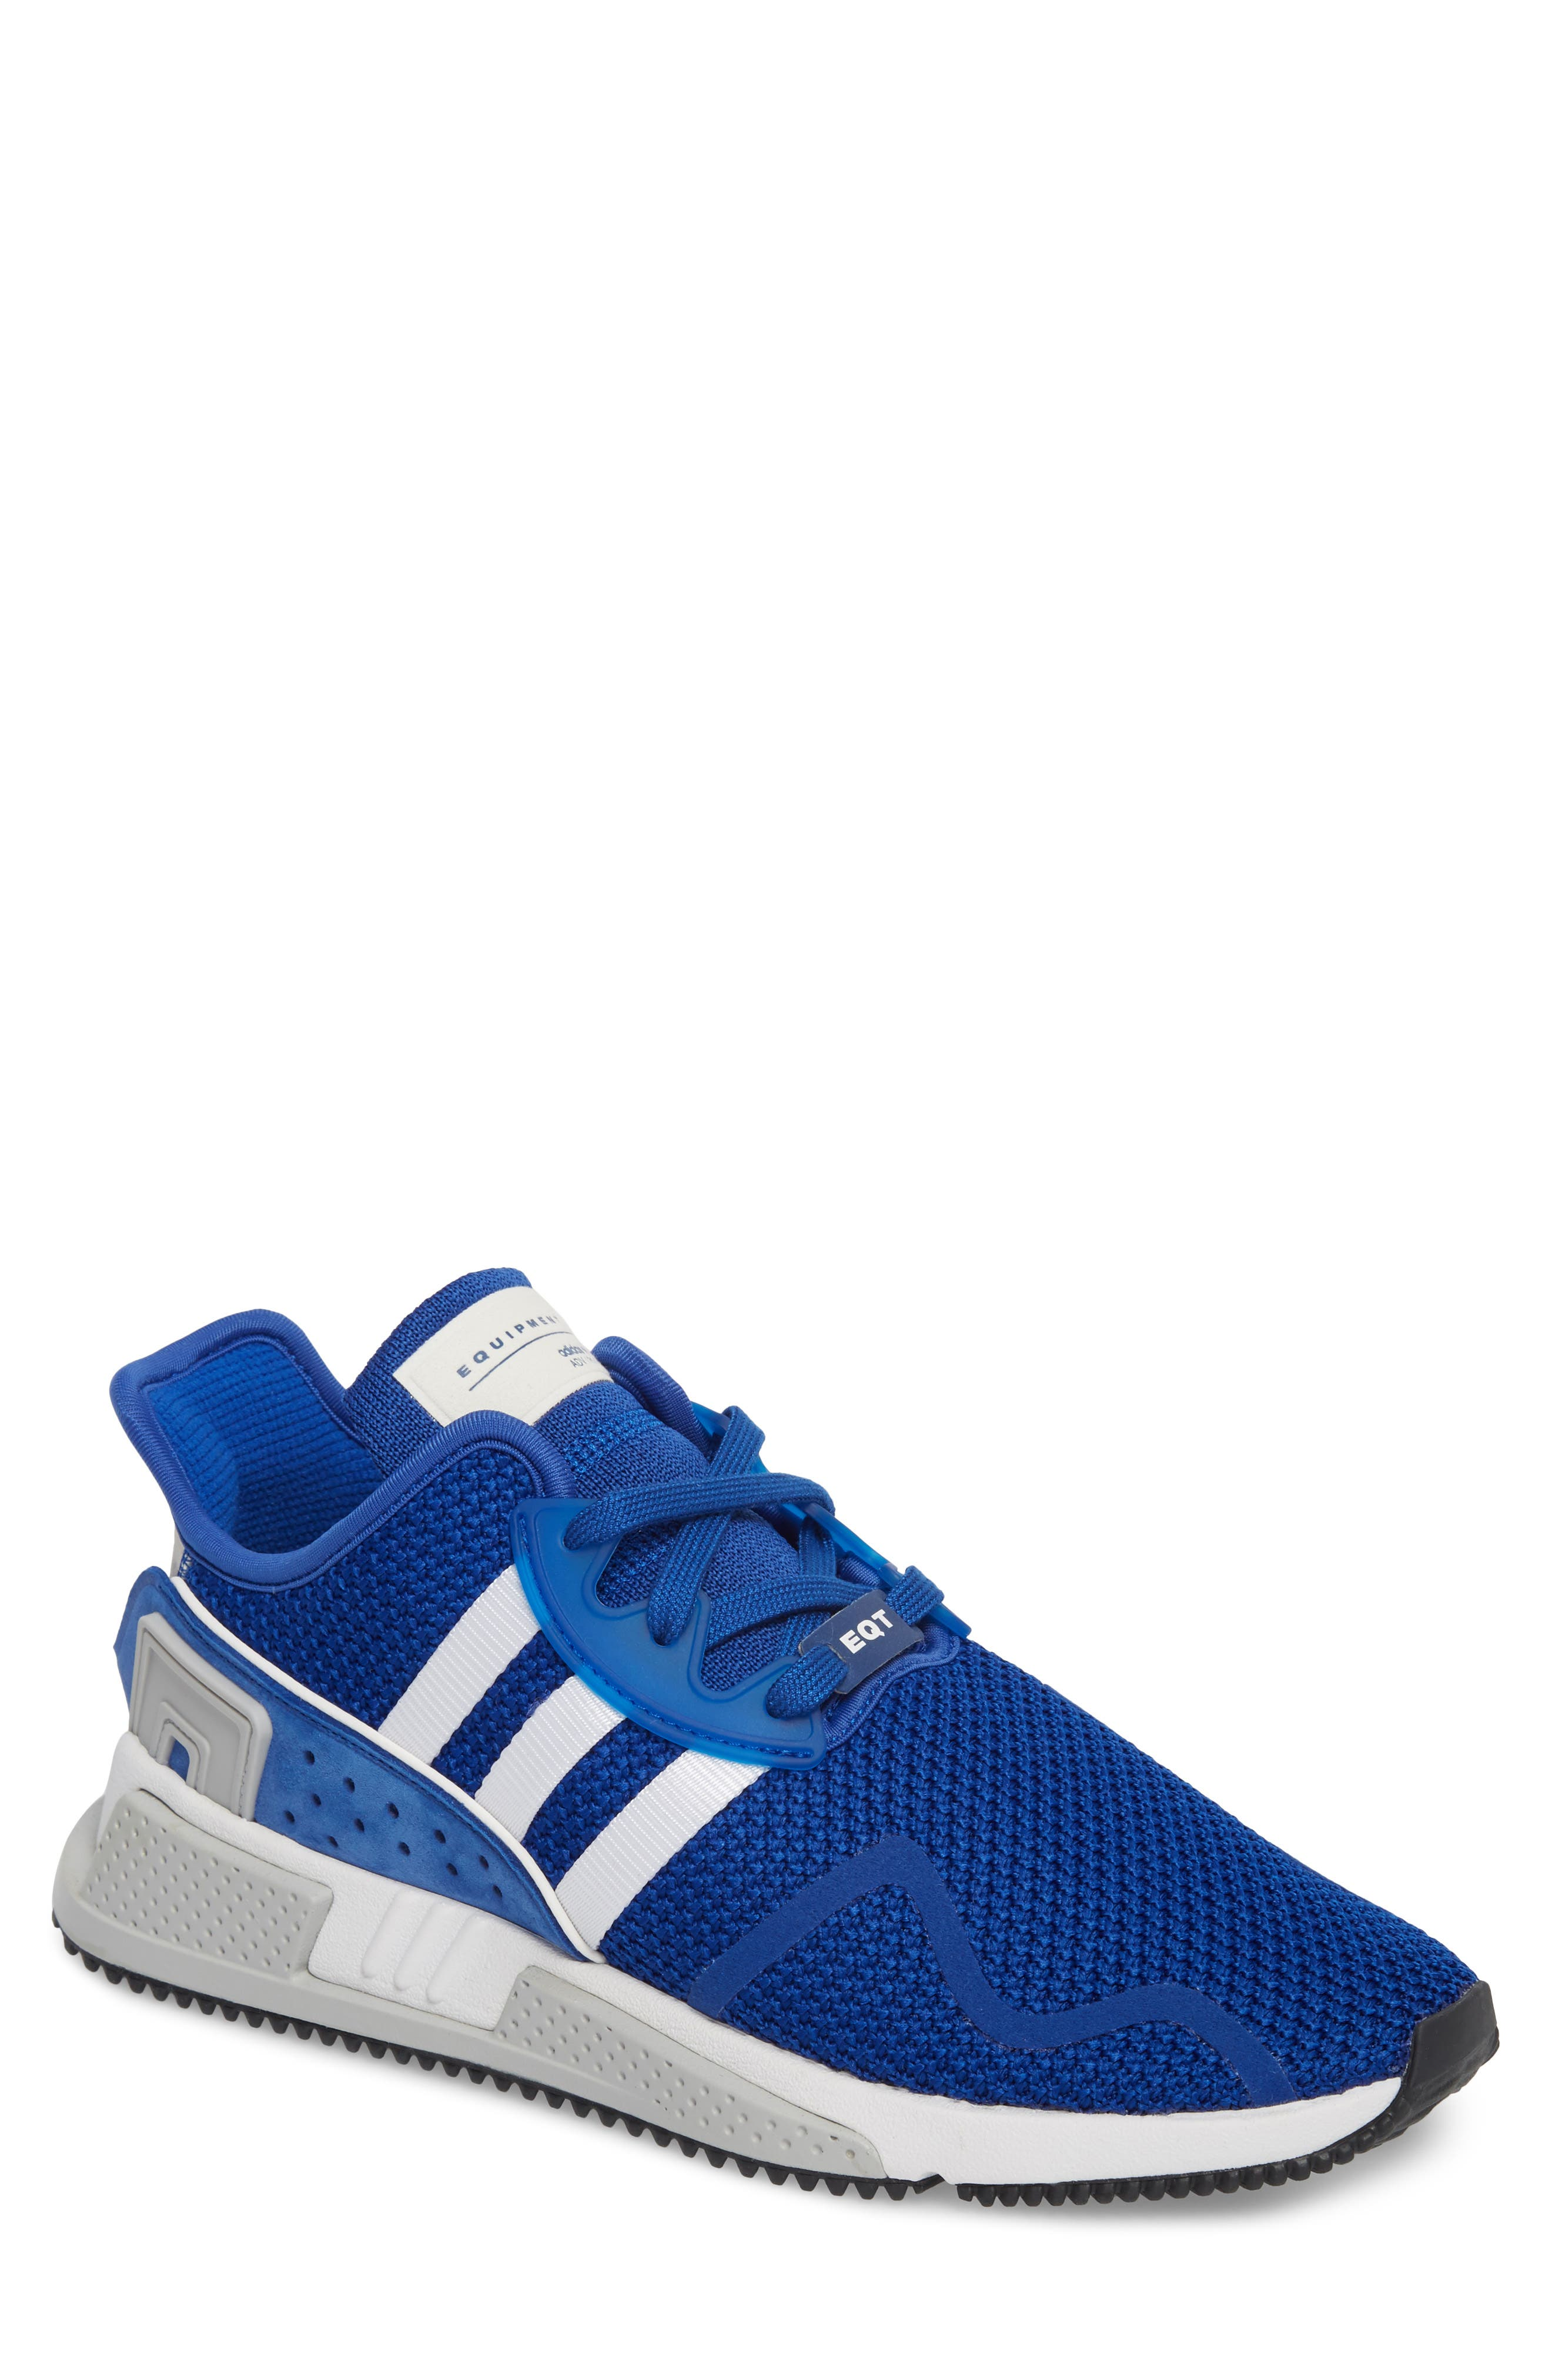 EQT Cushion ADV Sneaker,                             Main thumbnail 1, color,                             Royal/ Crystal White